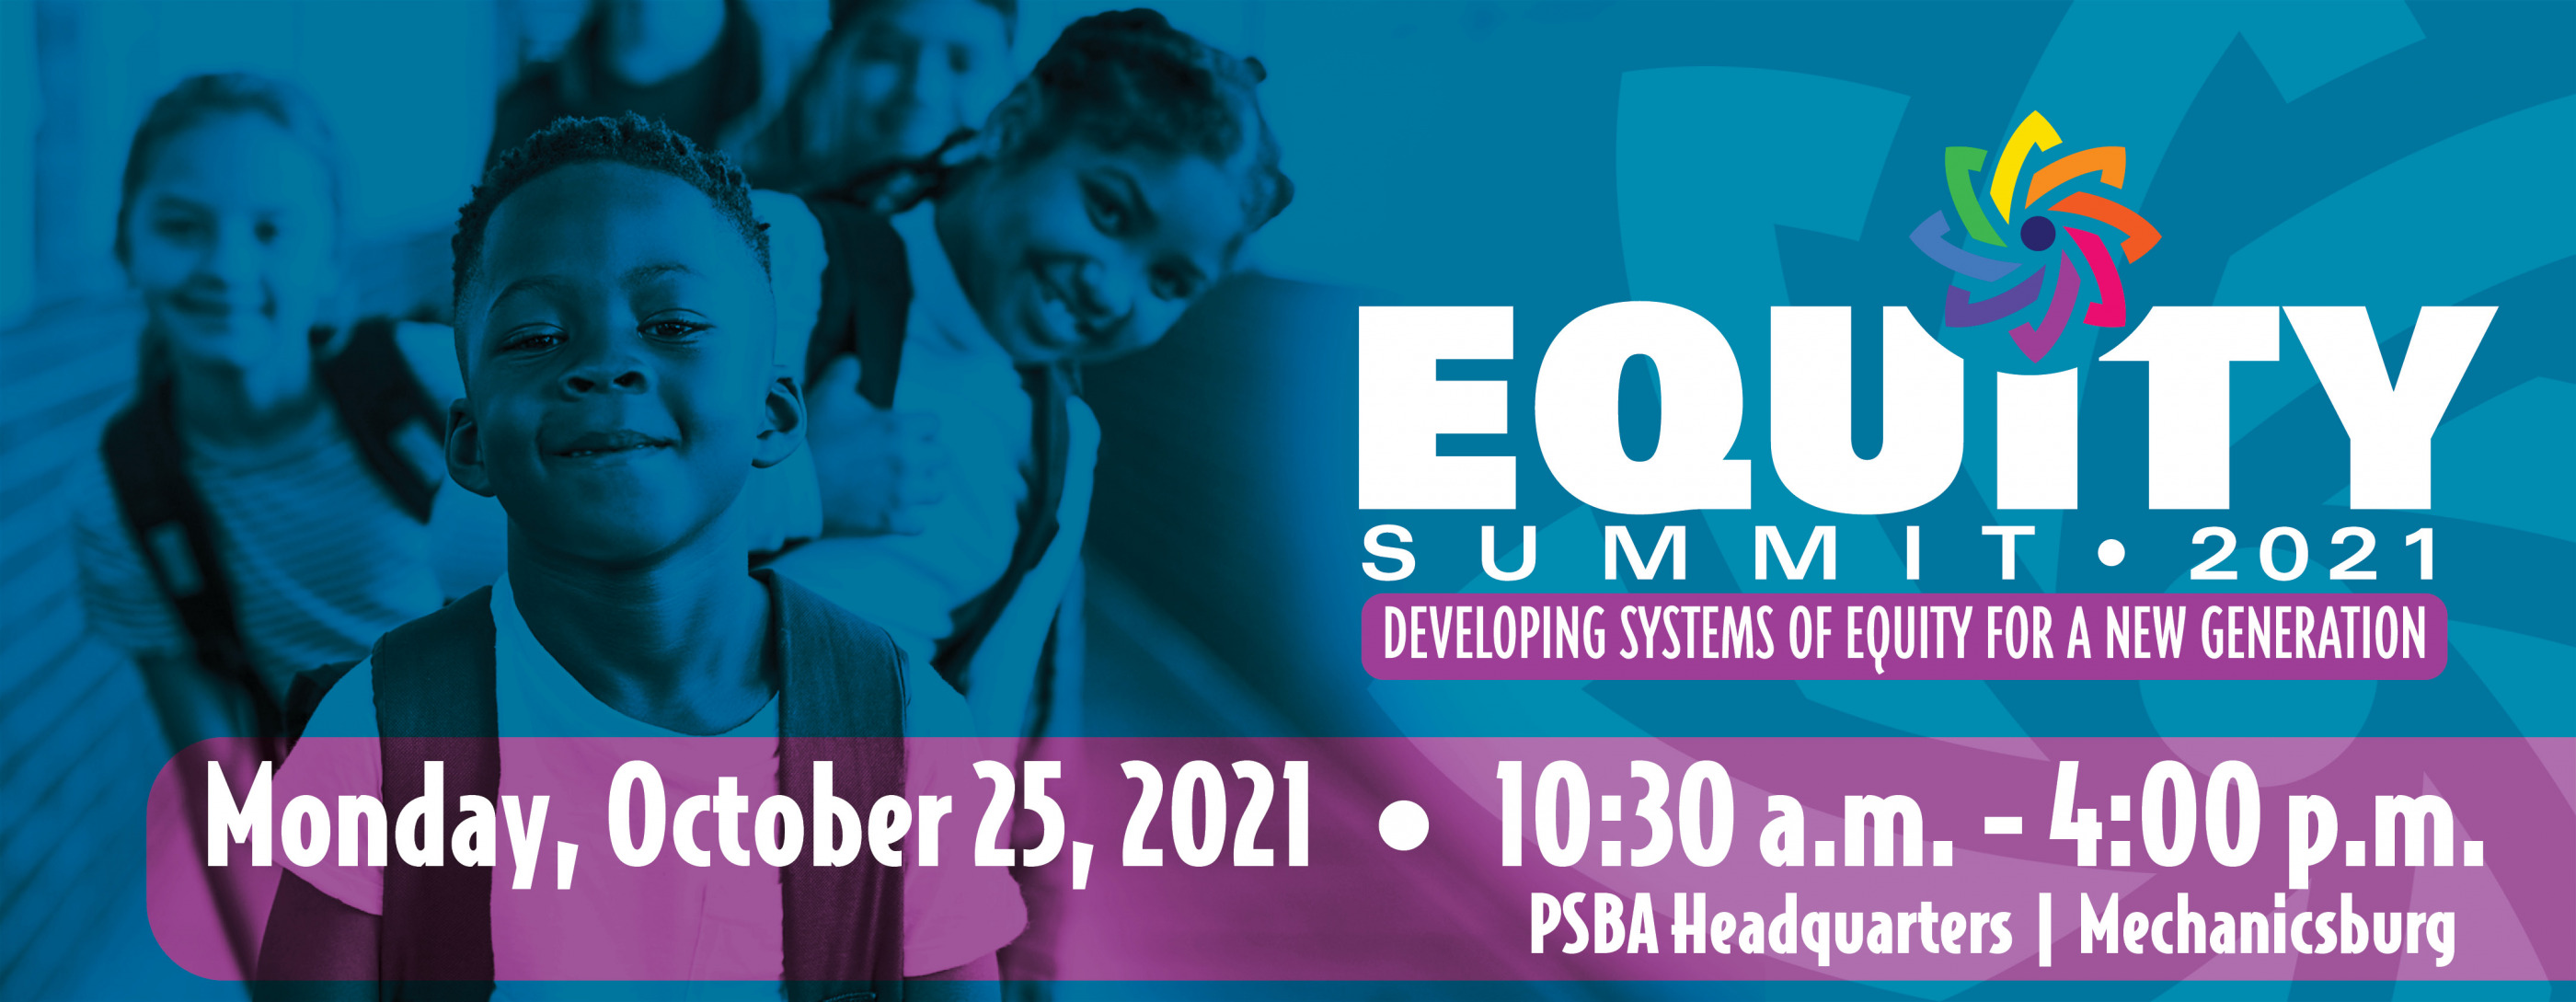 Attend Equity Summit event